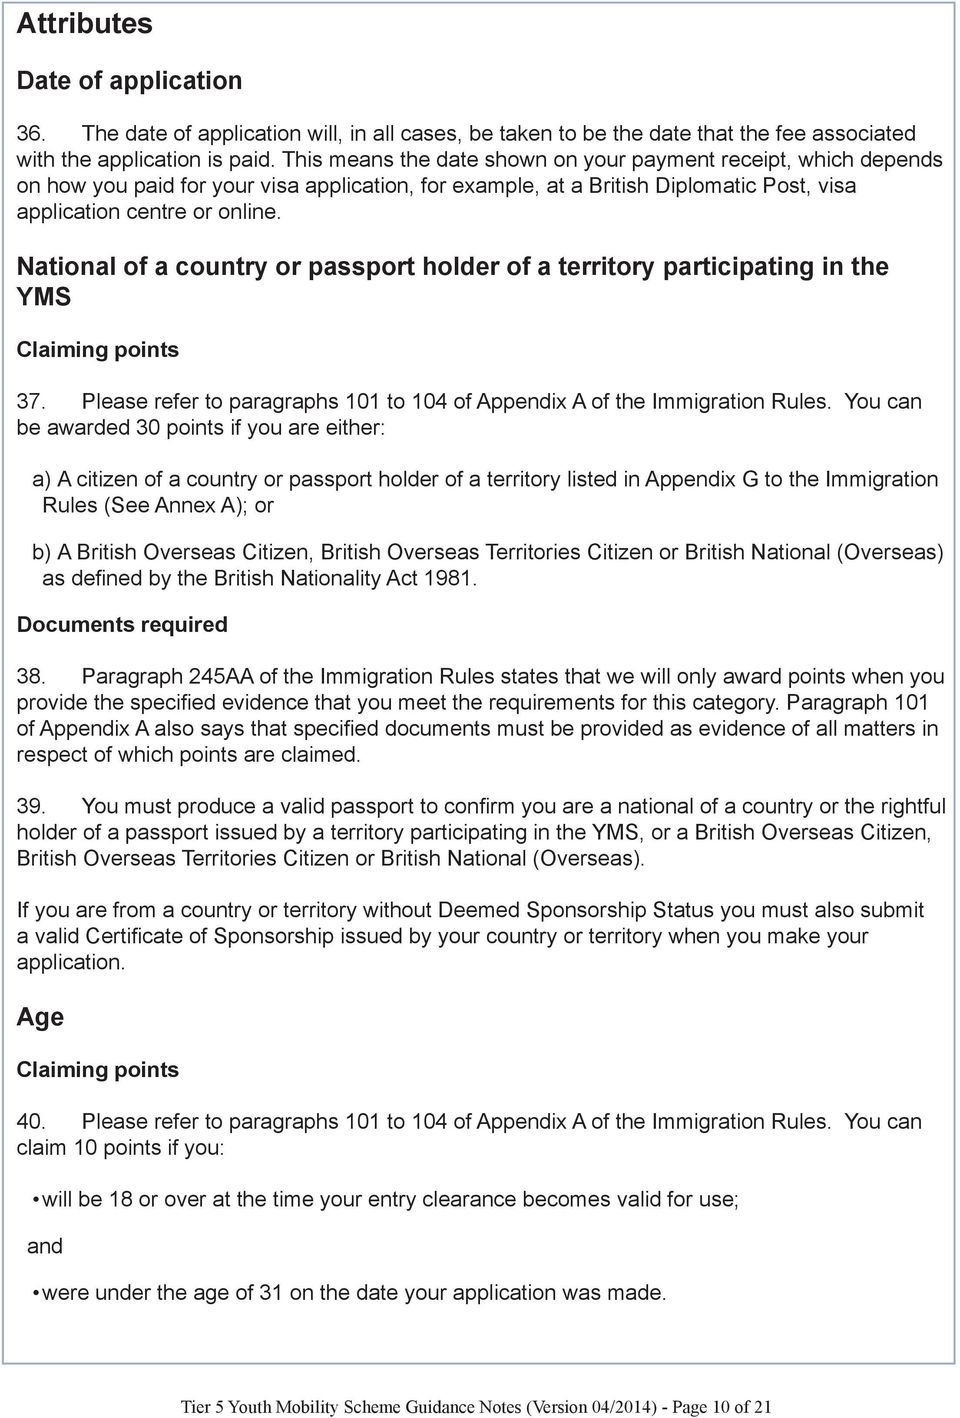 National of a country or passport holder of a territory participating in the YMS Claiming points 37. Please refer to paragraphs 101 to 104 of Appendix A of the Immigration Rules.